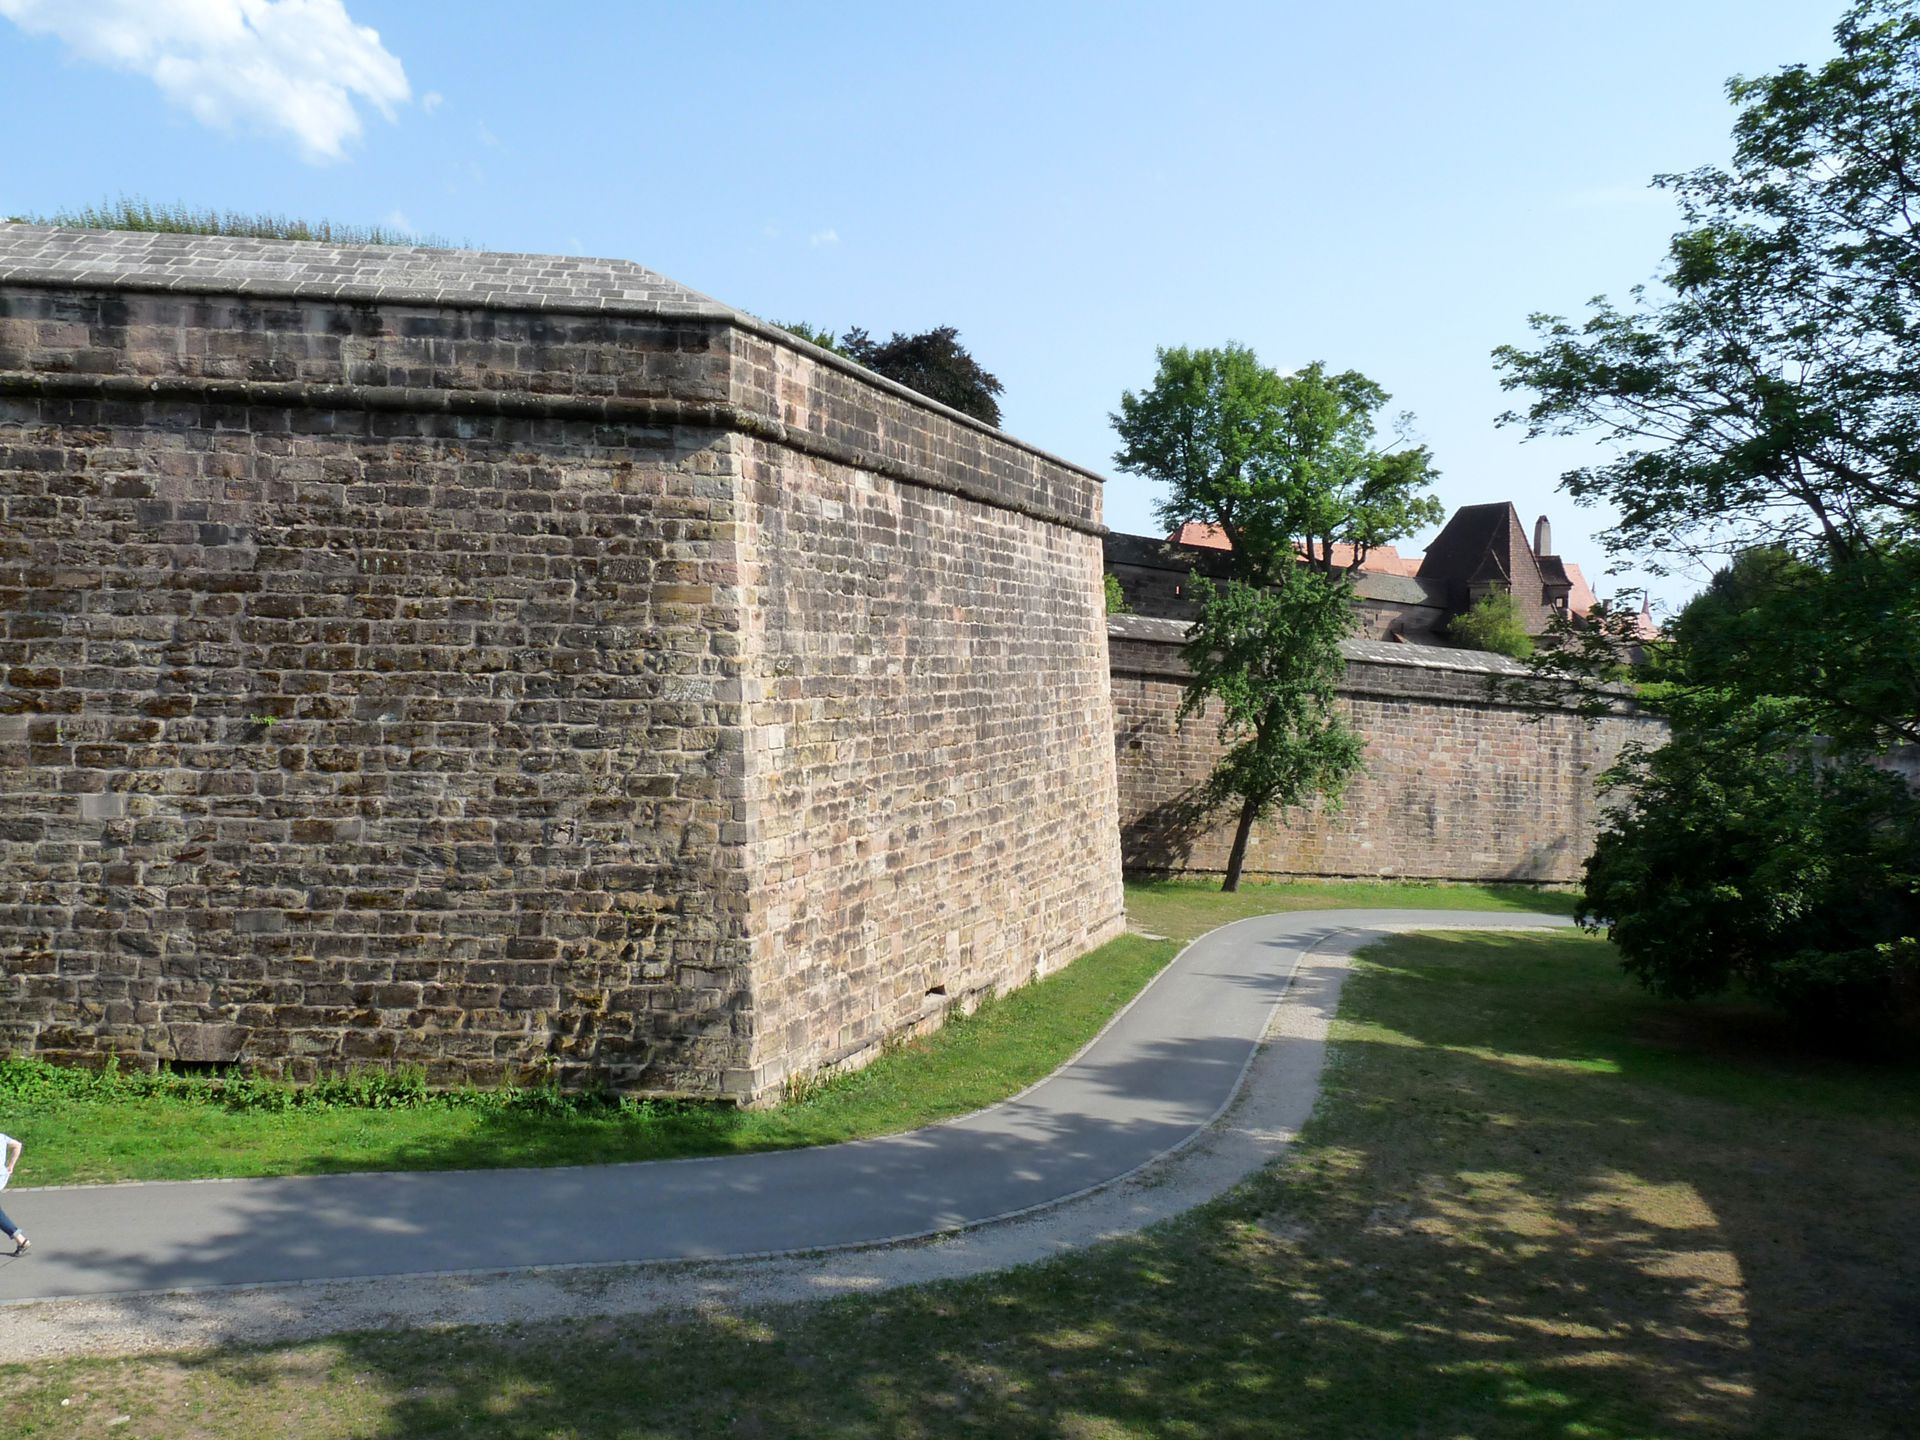 City Fortification Moat with Tiergärtnertor bastion